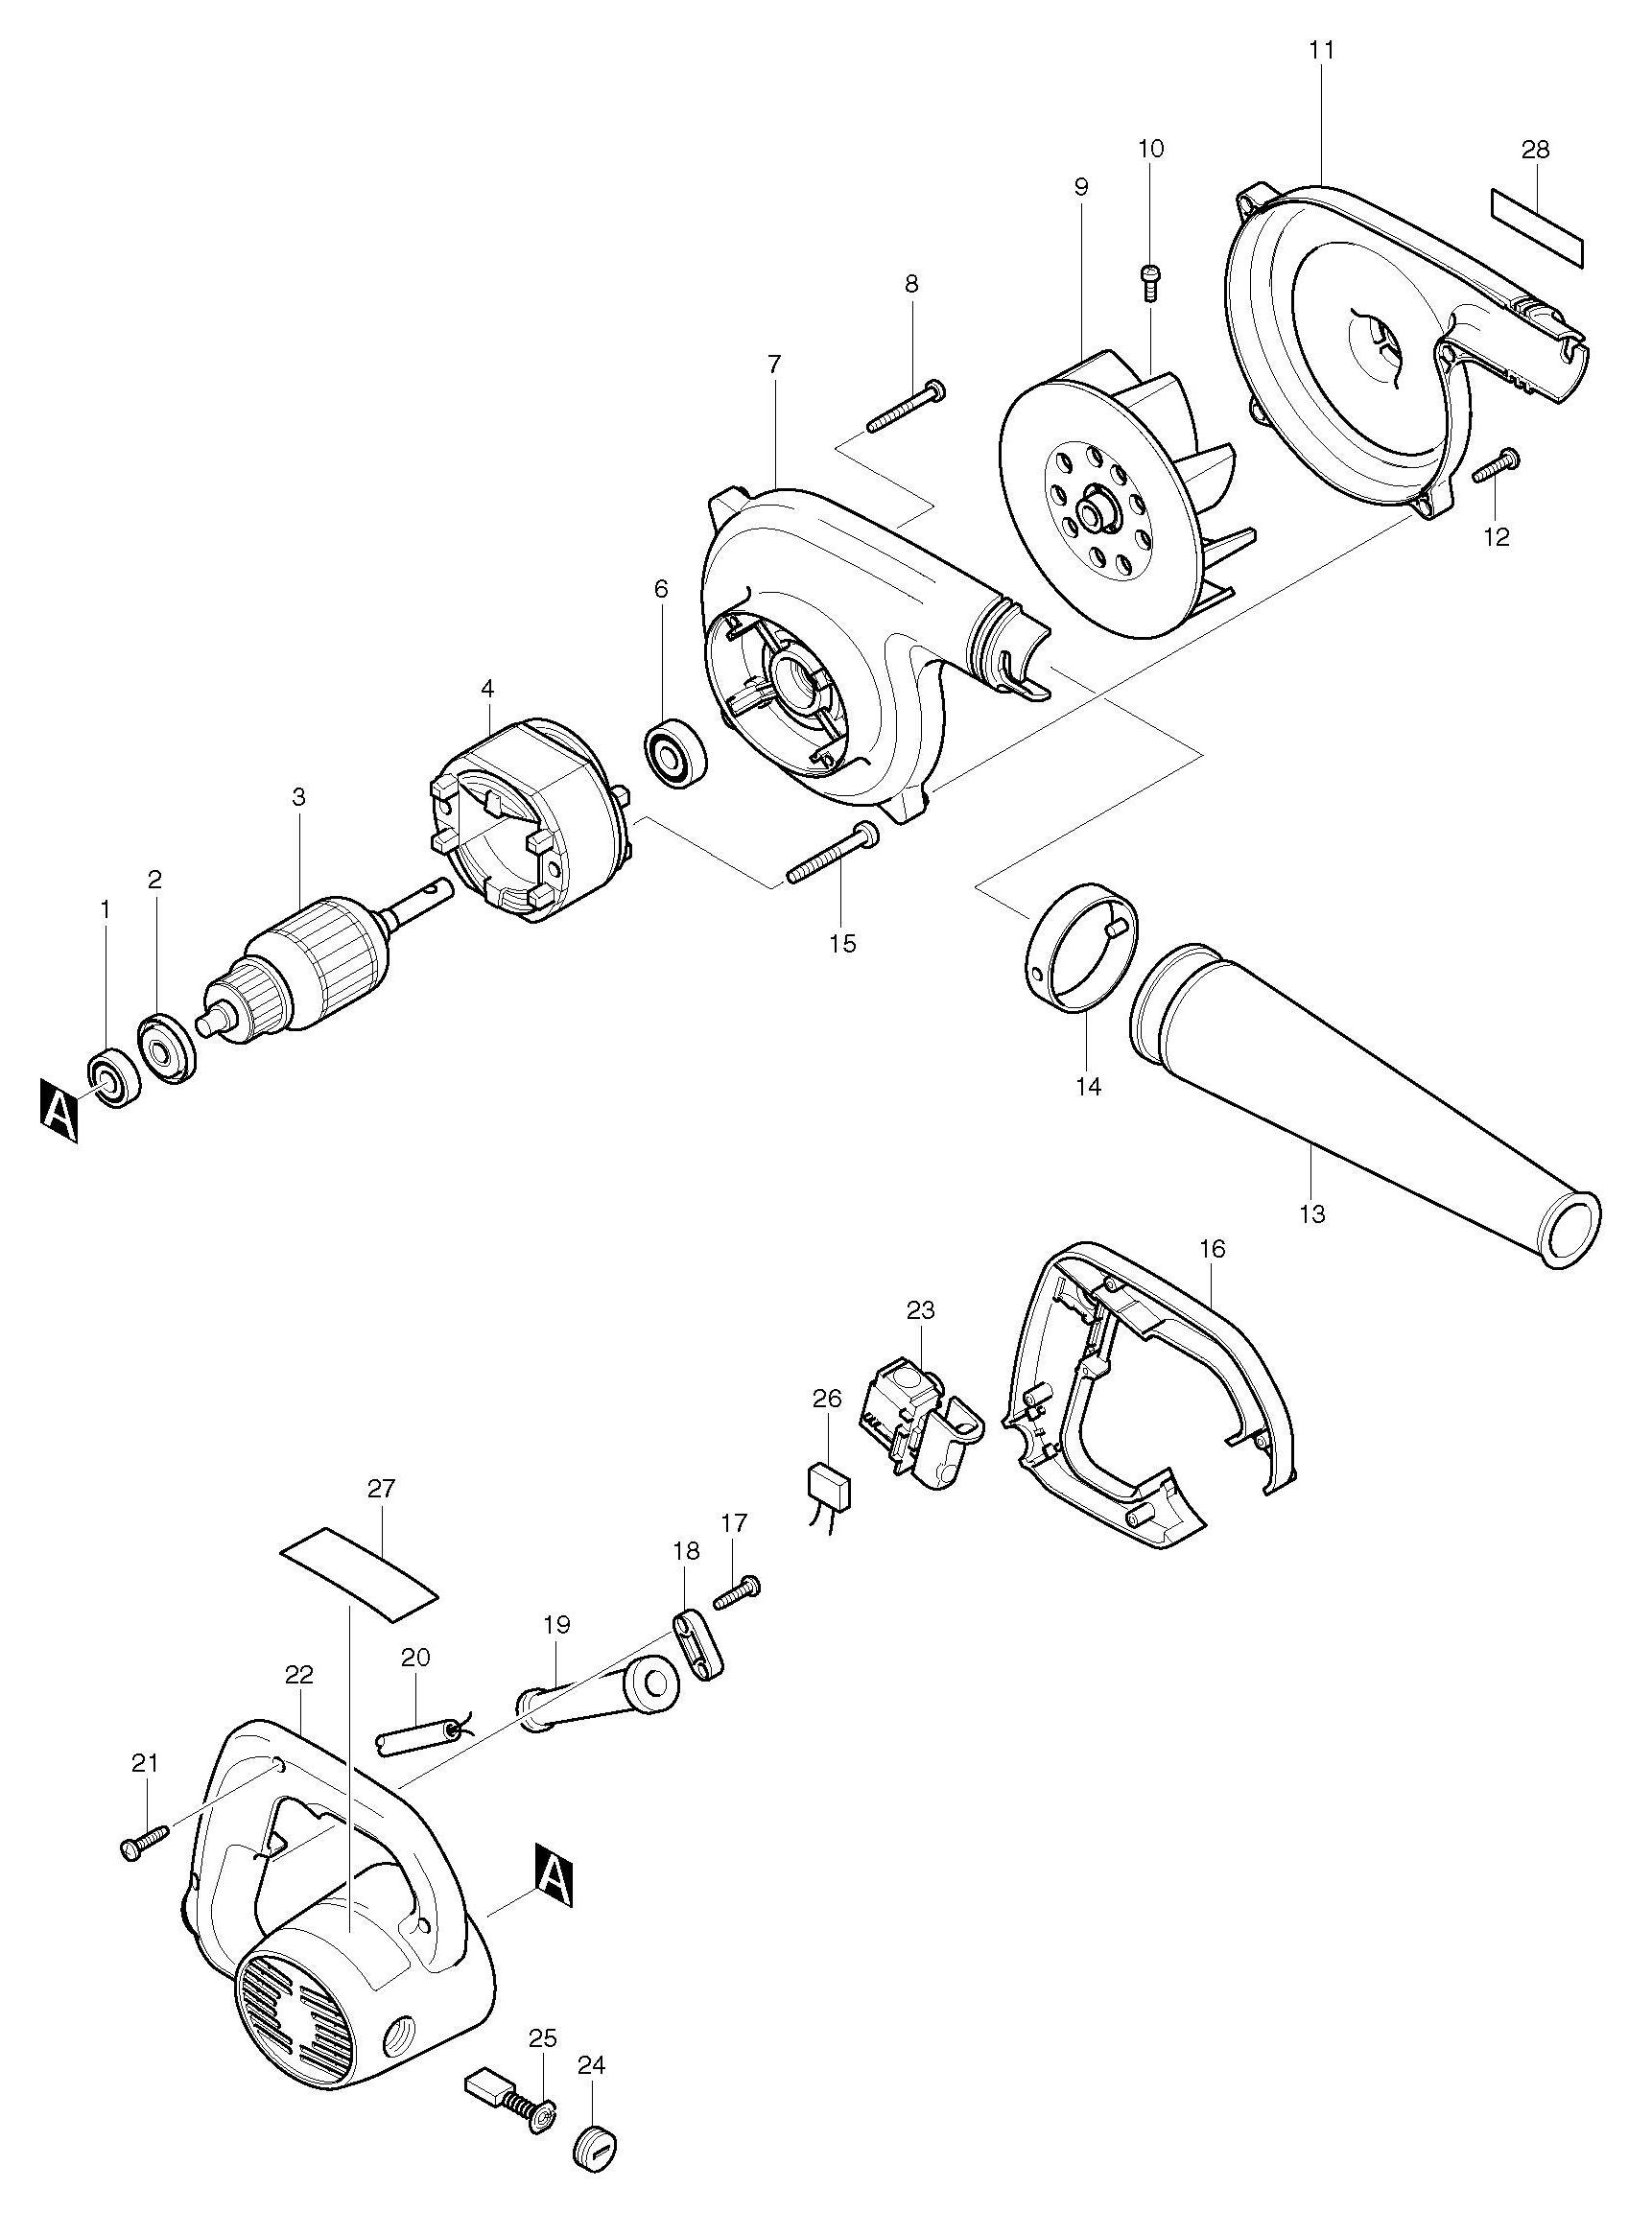 Spares for Makita Ub1101 Blower SPARE_UB1101 from Power